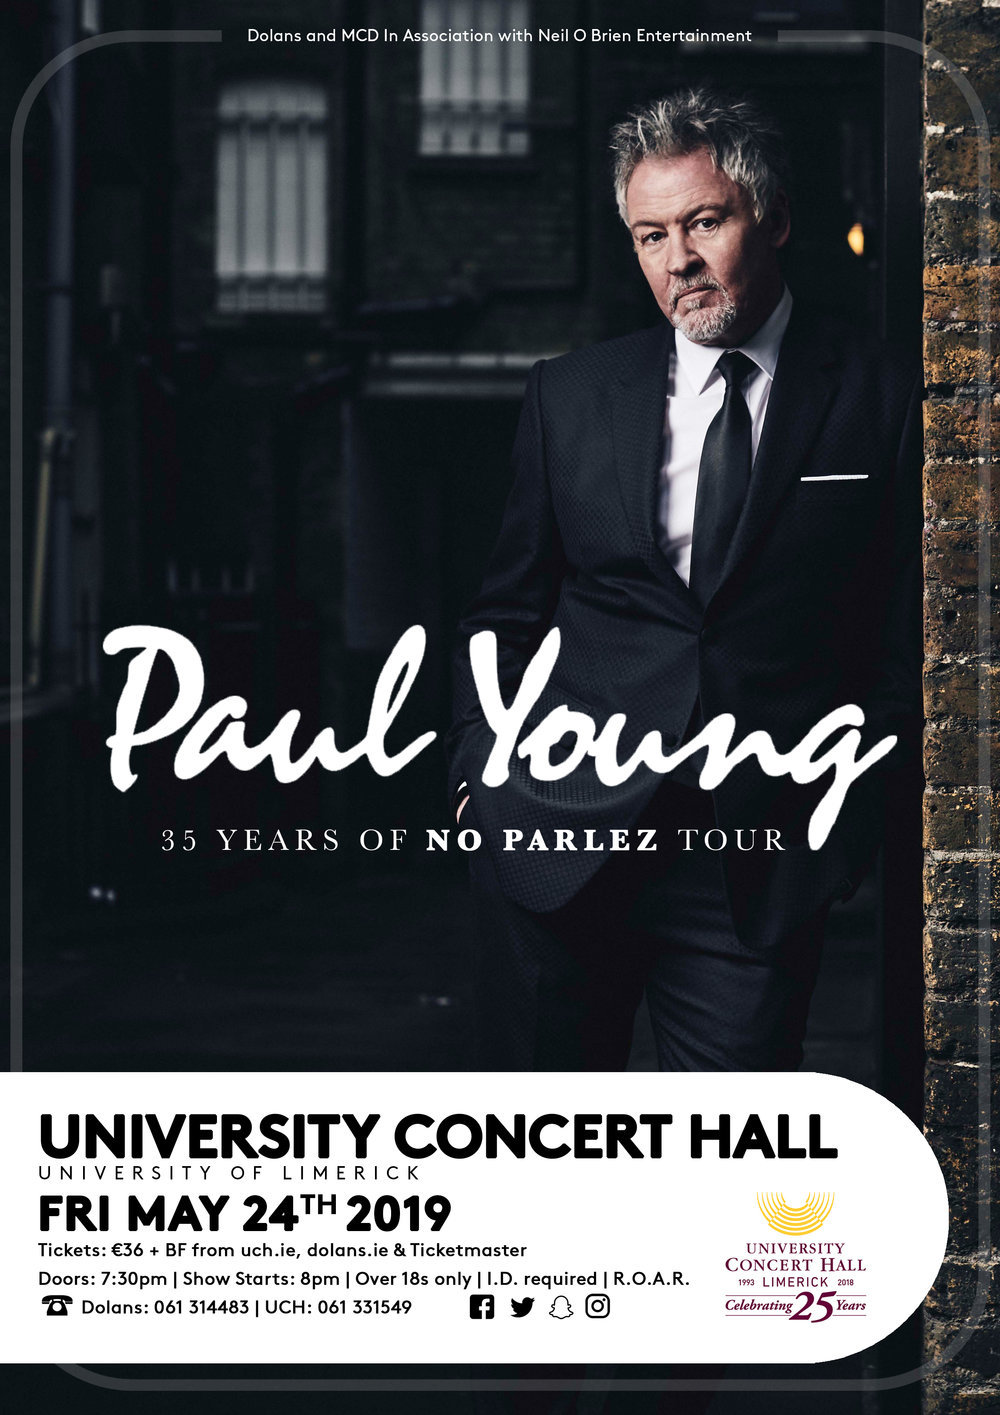 Tickets €38 - Available from The University Concert Hall